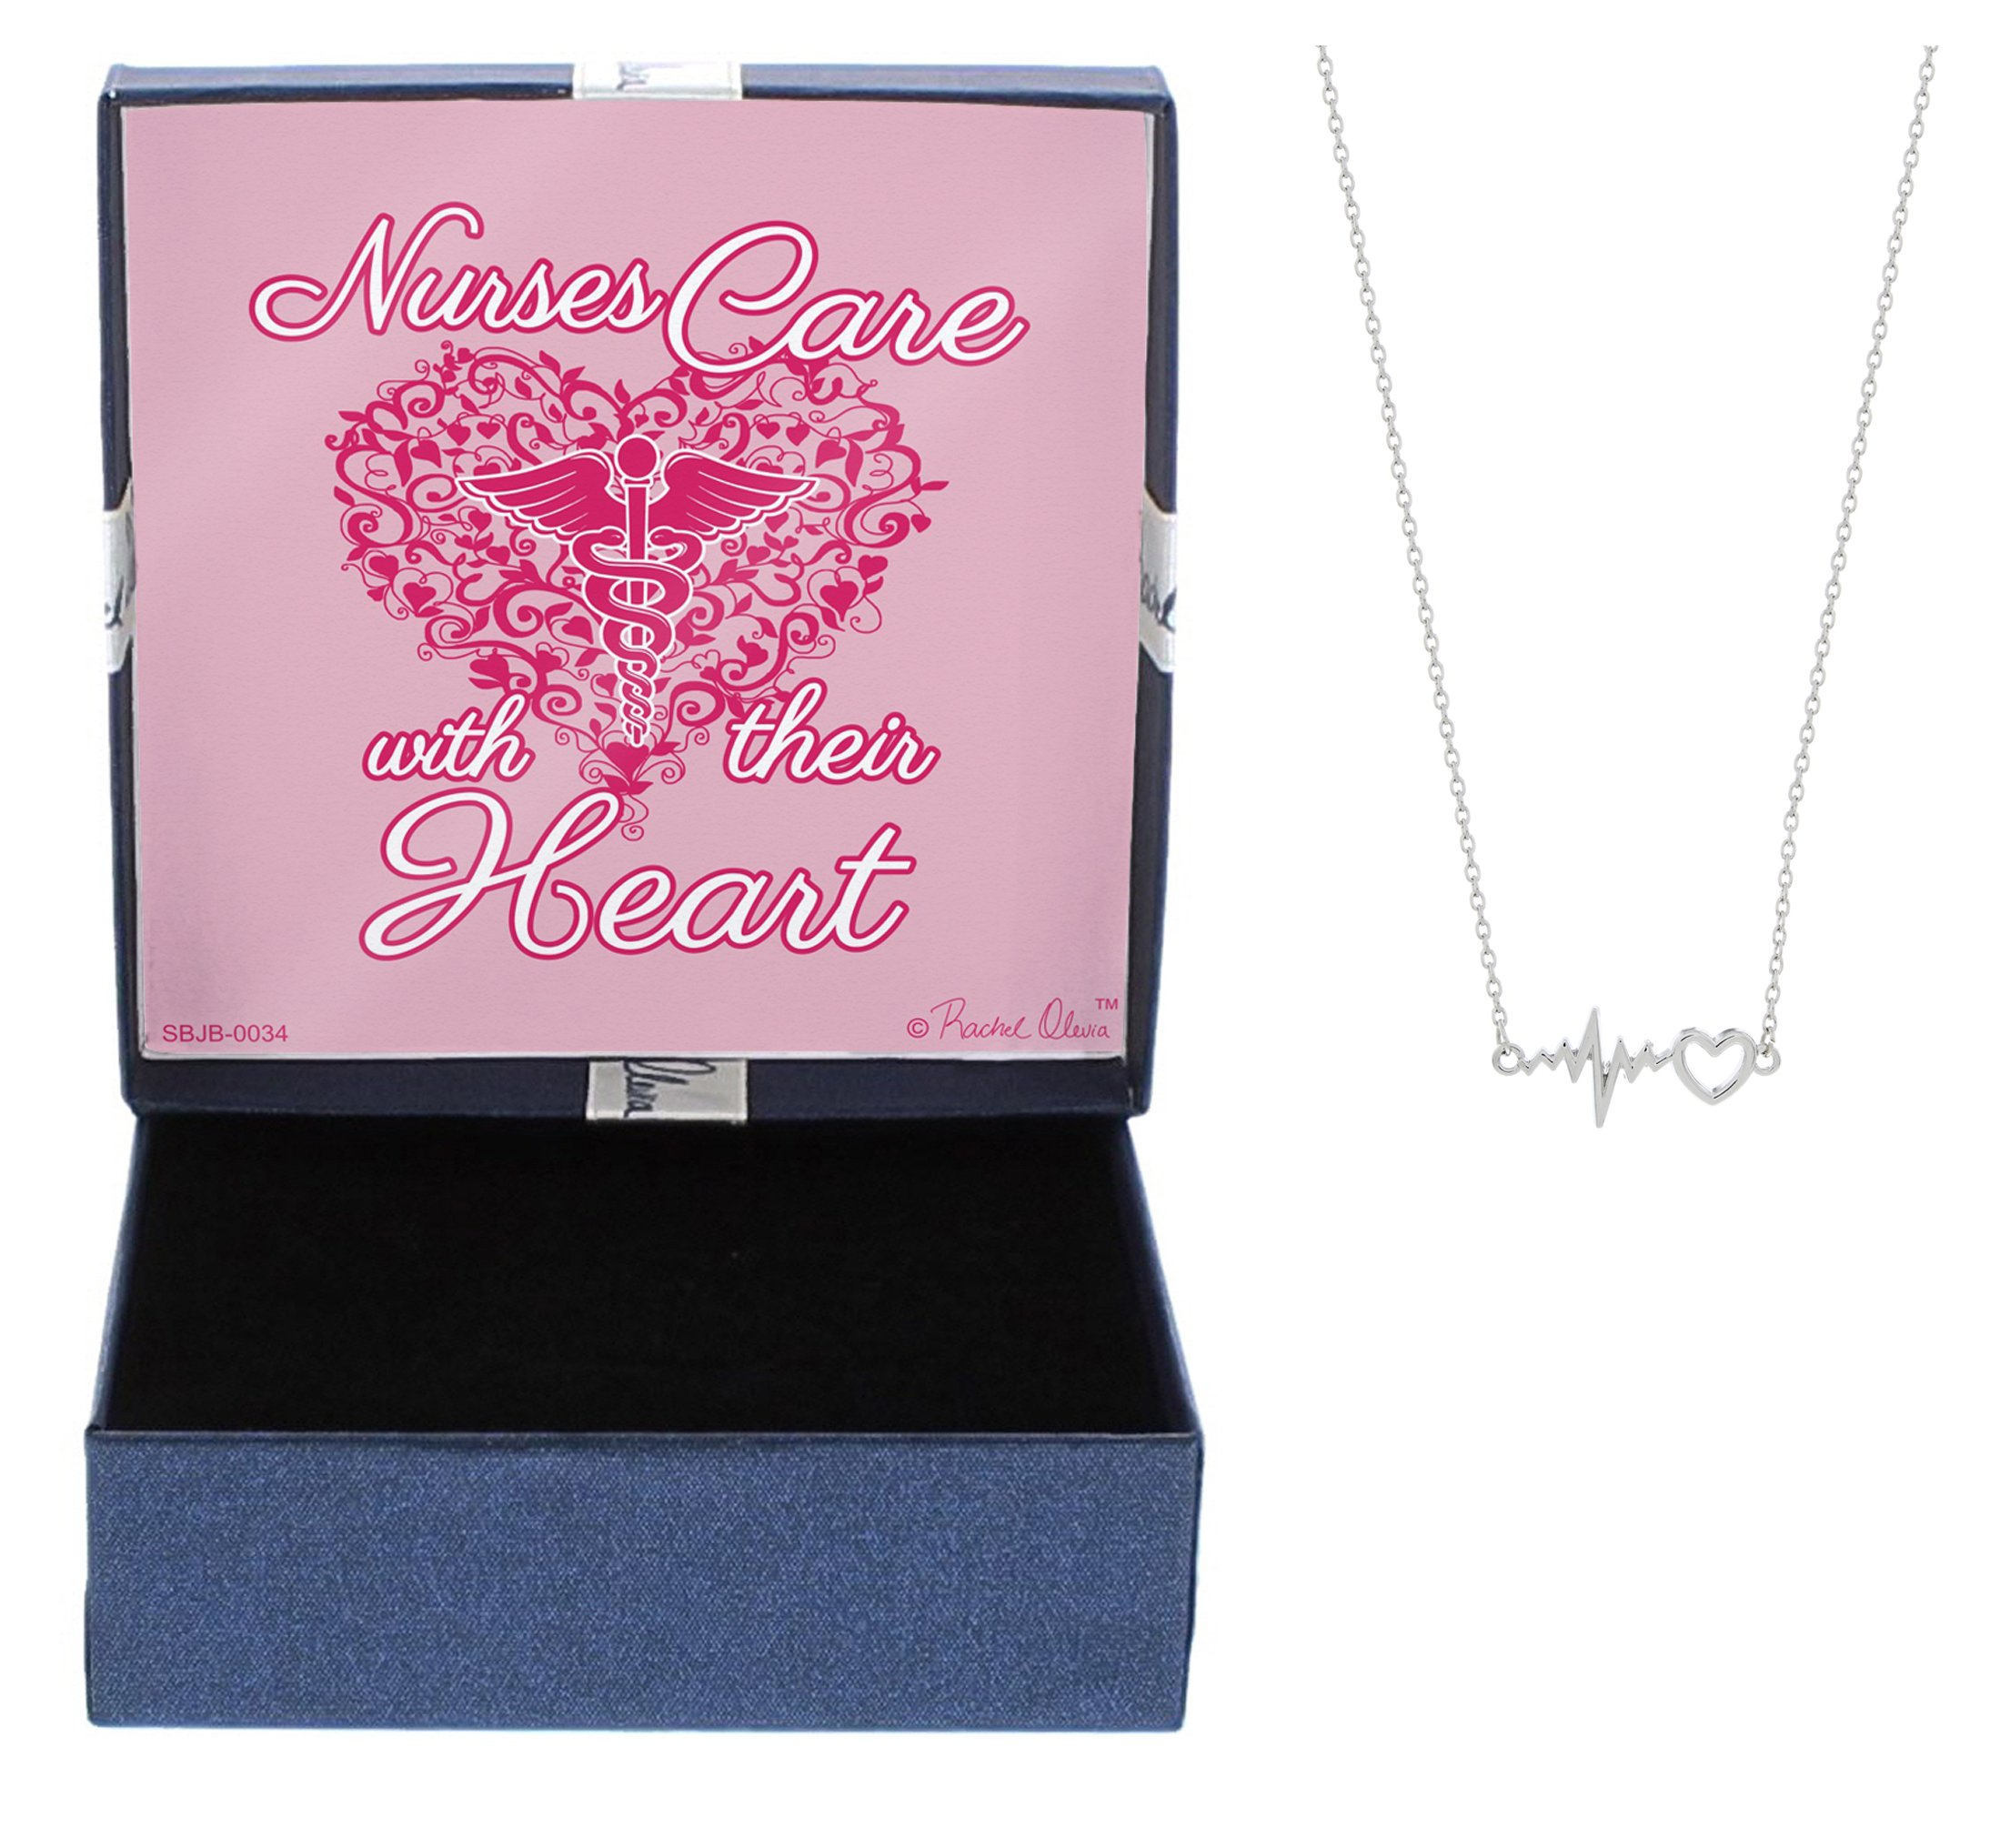 itm box pendant silver jewelry heart gift tone for ecg test description ekg necklace nurse